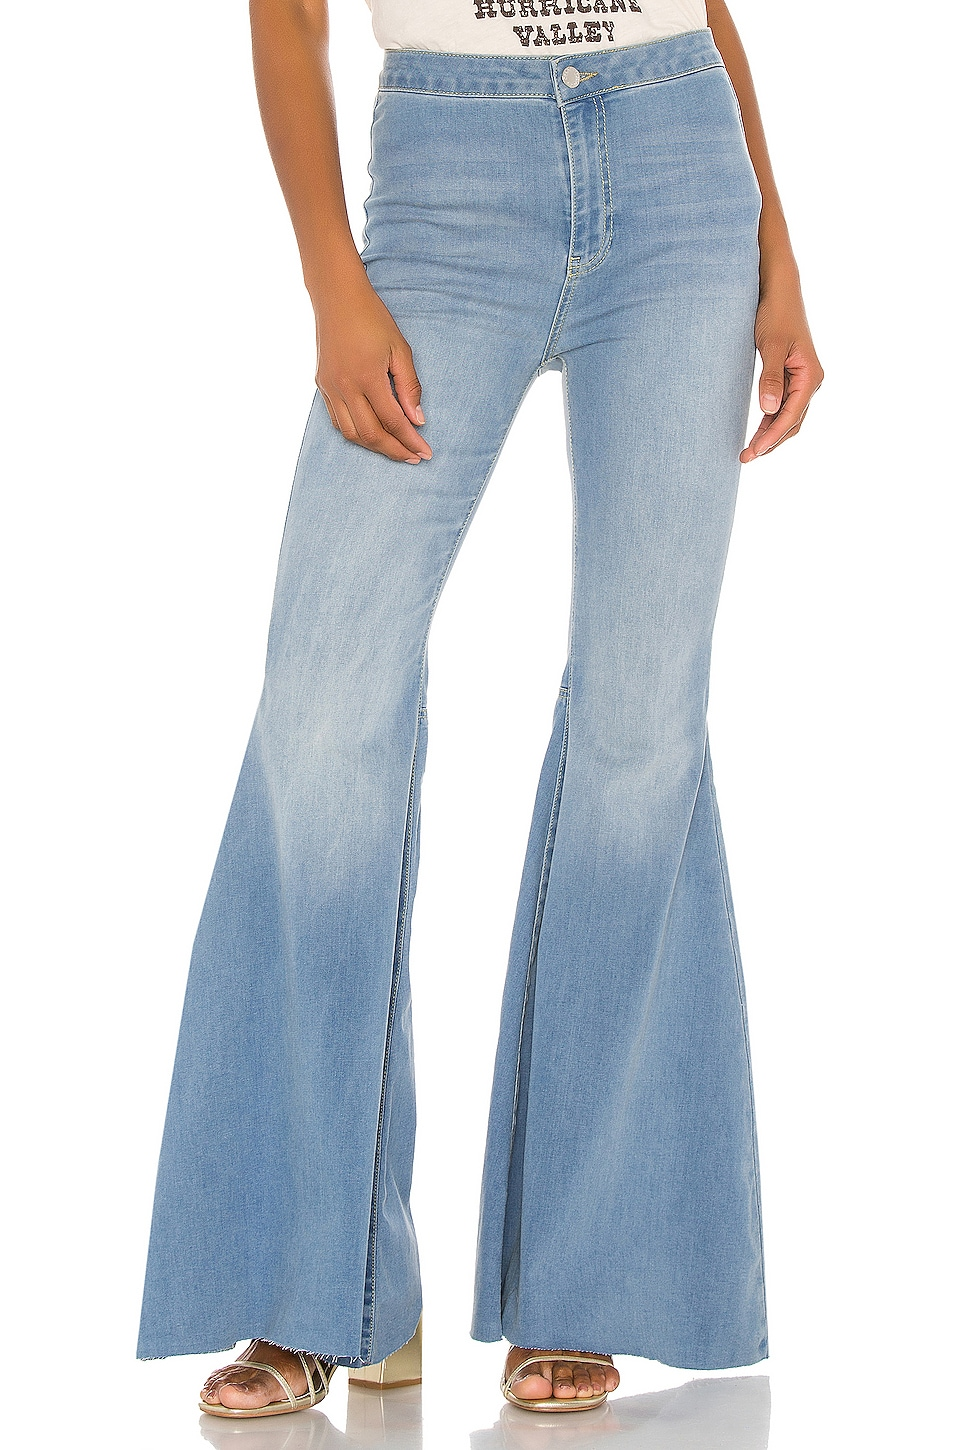 Free People Just Float On Flare Jean in Blue Combo